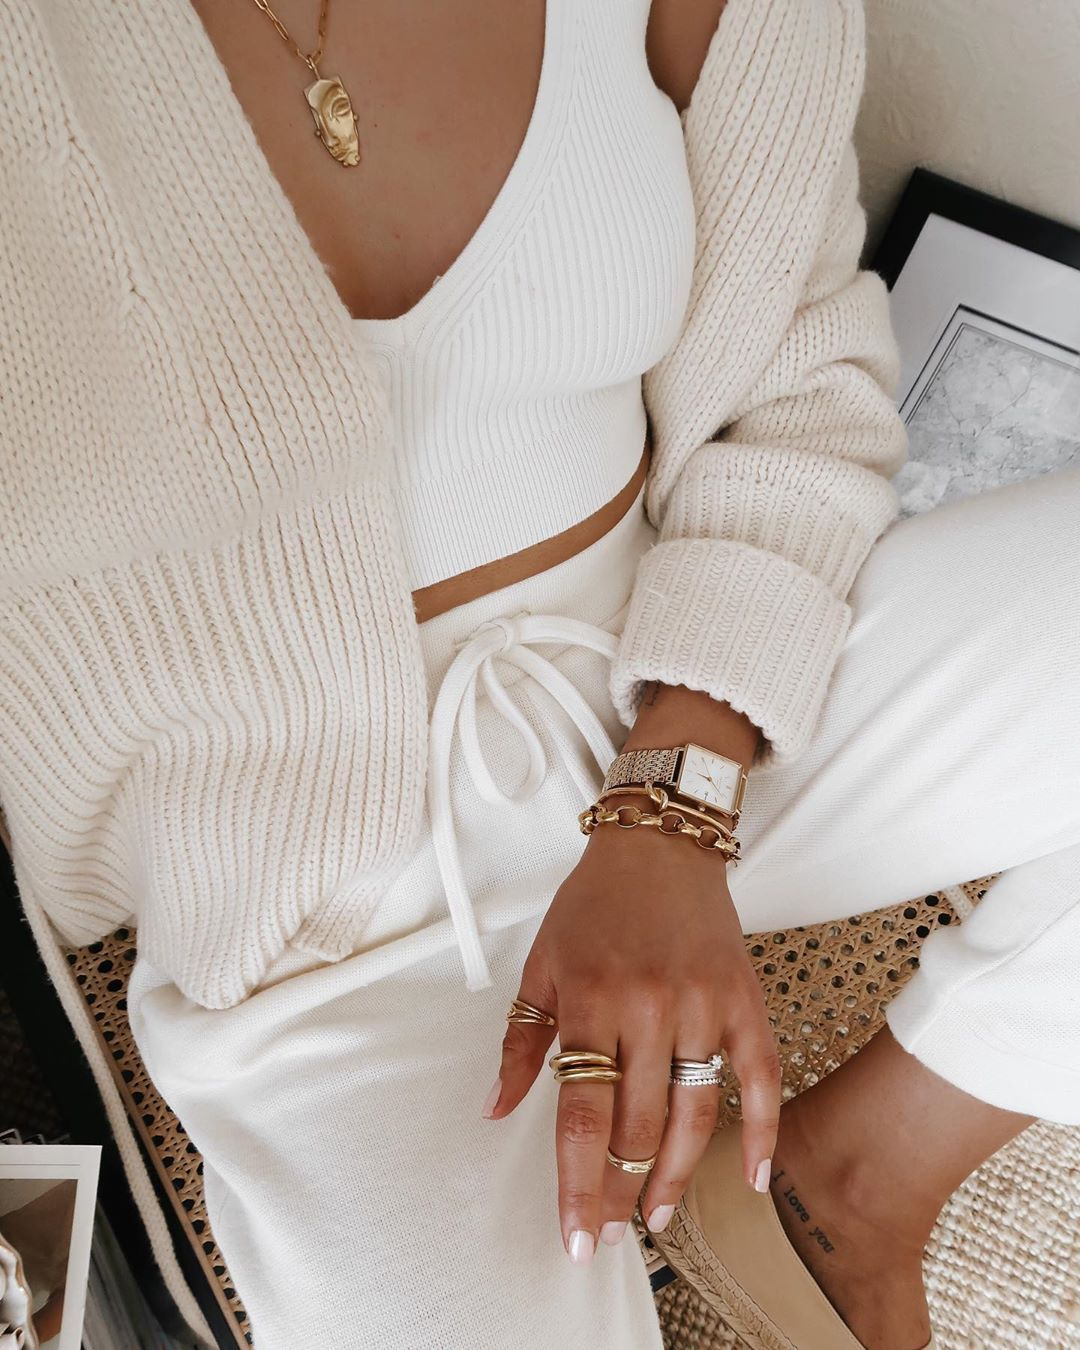 """London Blogger◾️Justine on Instagram: """"Proper gold jewellery addict 🙊 . . . . .  #outfitdiaries #styletips #stylegram #fashionpost #todaysoutfit #ootdshare #mylook #wearthisnext…"""""""